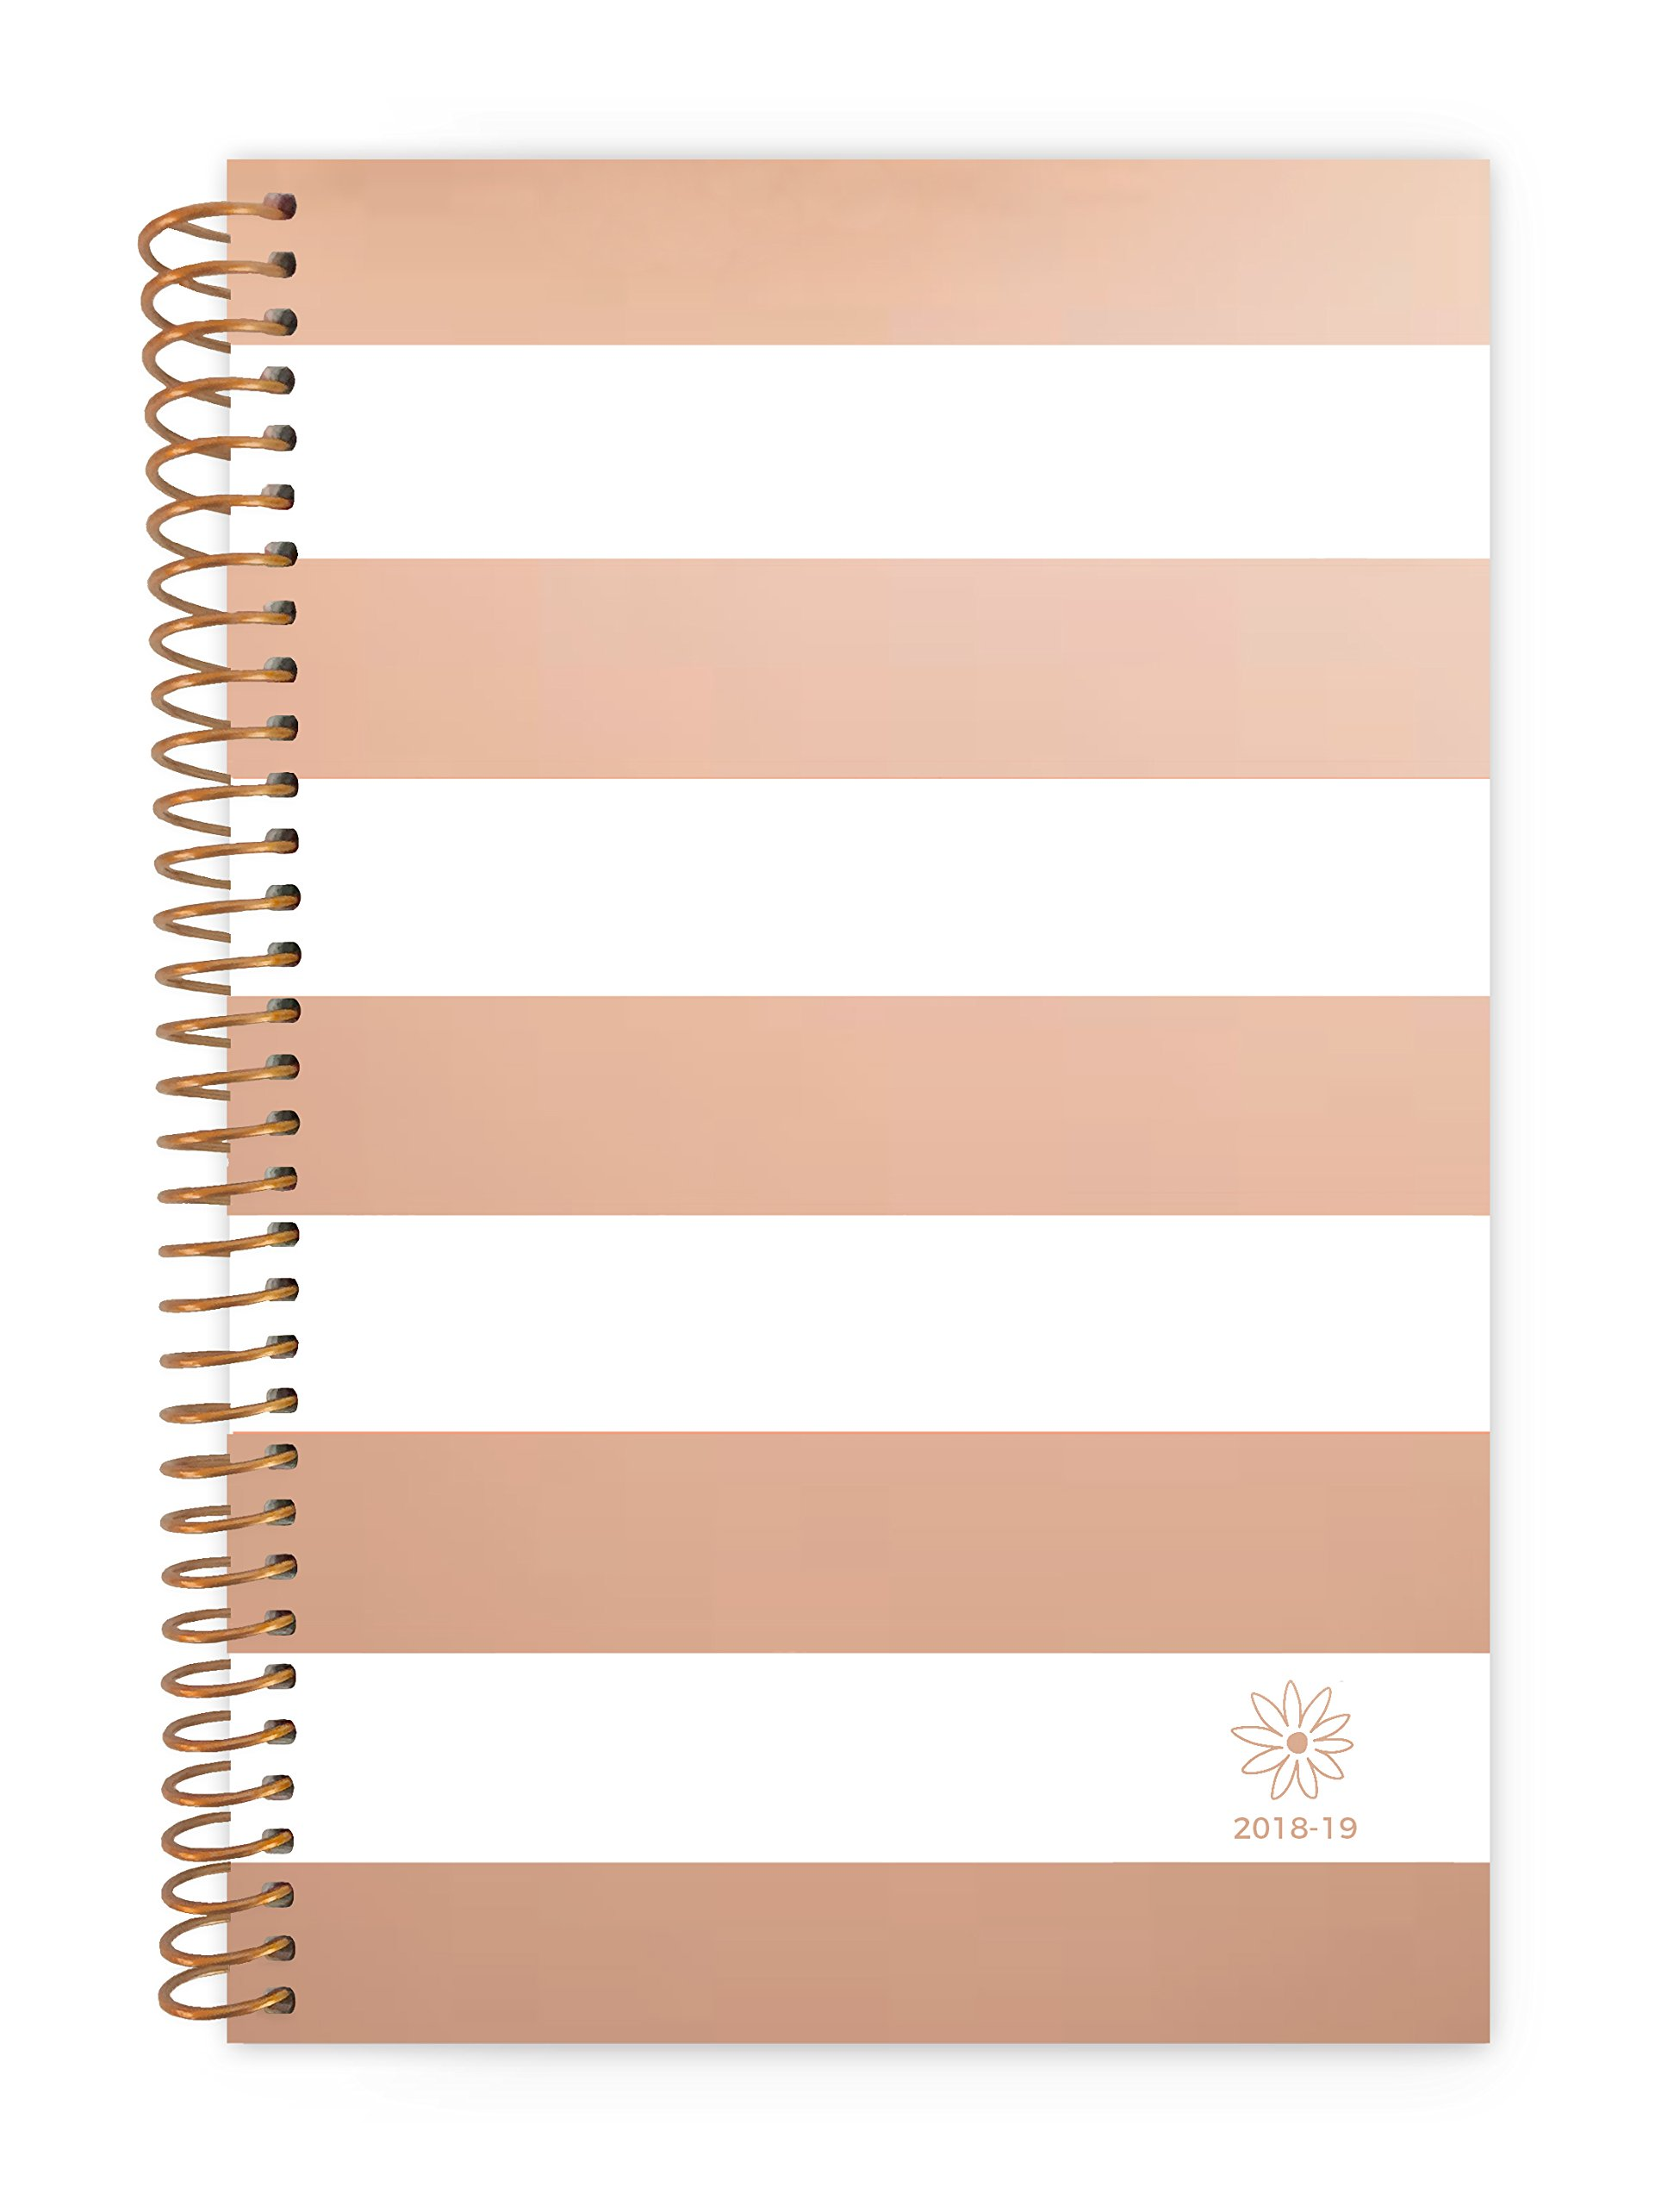 Bloom Daily Planners 2018-2019 Academic Year Day Planner - Monthly Weekly Calendar Book - Inspirational Dated Agenda Organizer - (August 2018 - July 2019) - 6'' x 8.25'' - Rose Gold Stripes